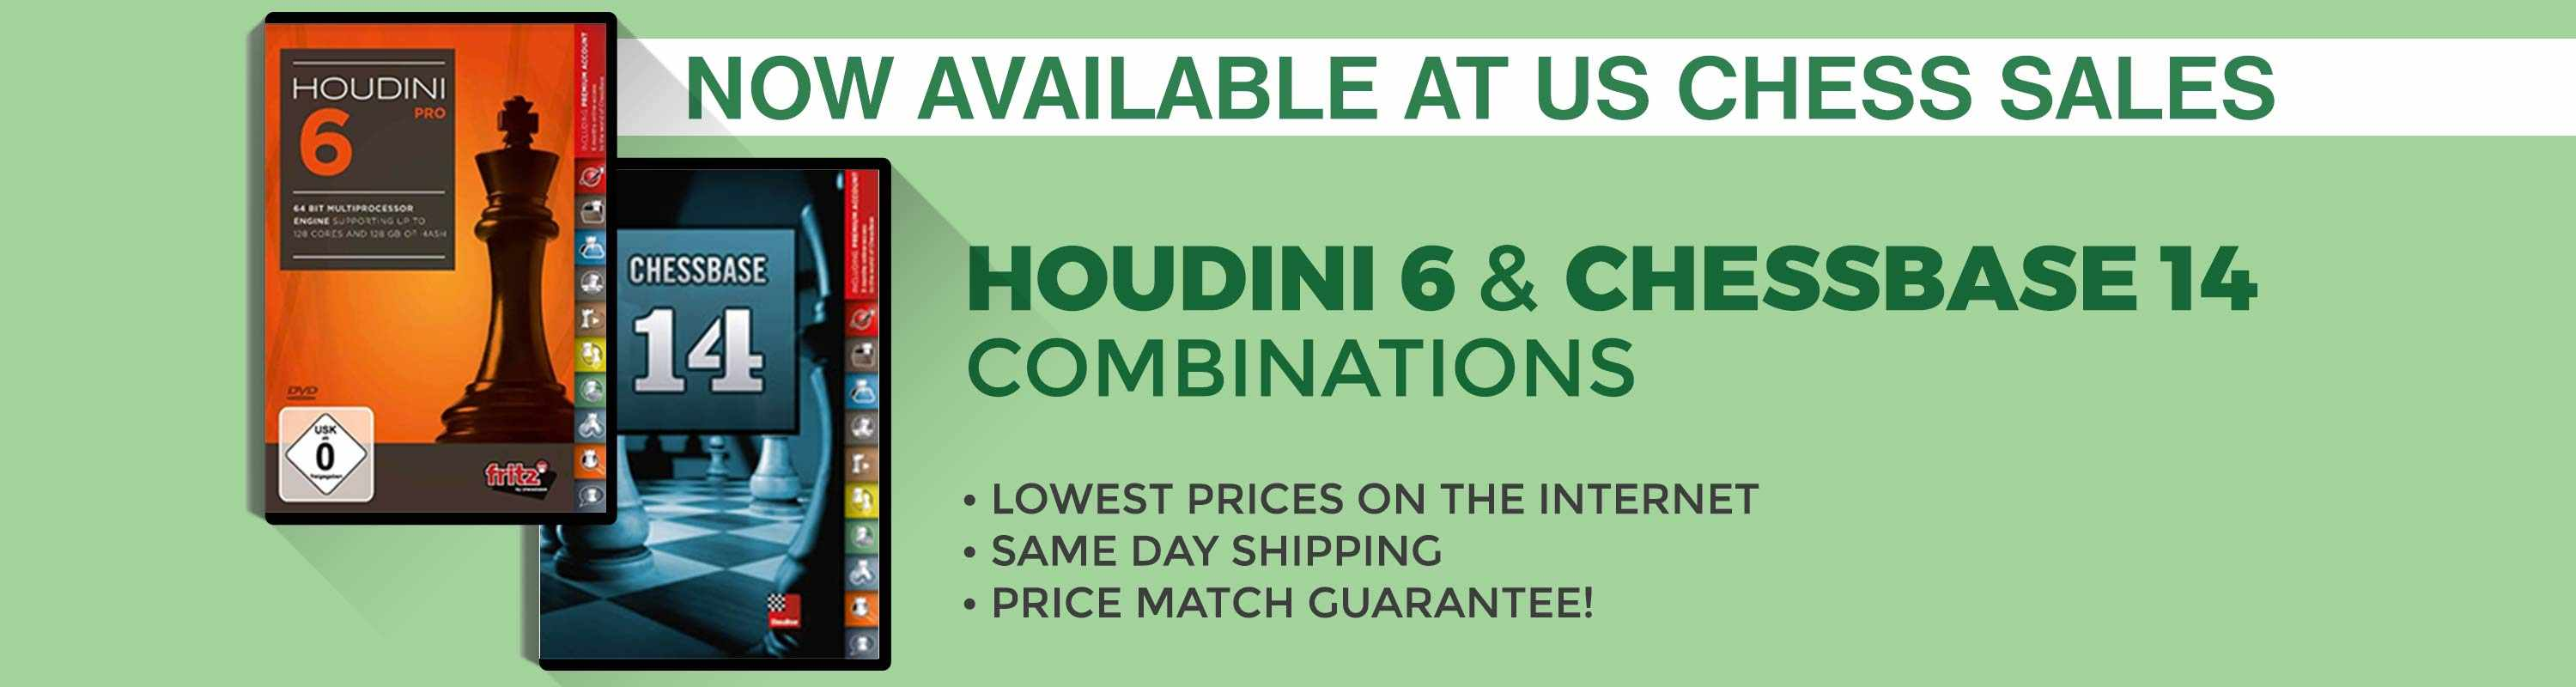 Houdini 6 & Chessbase 14 Combinations Now Available at US Chess Sales!